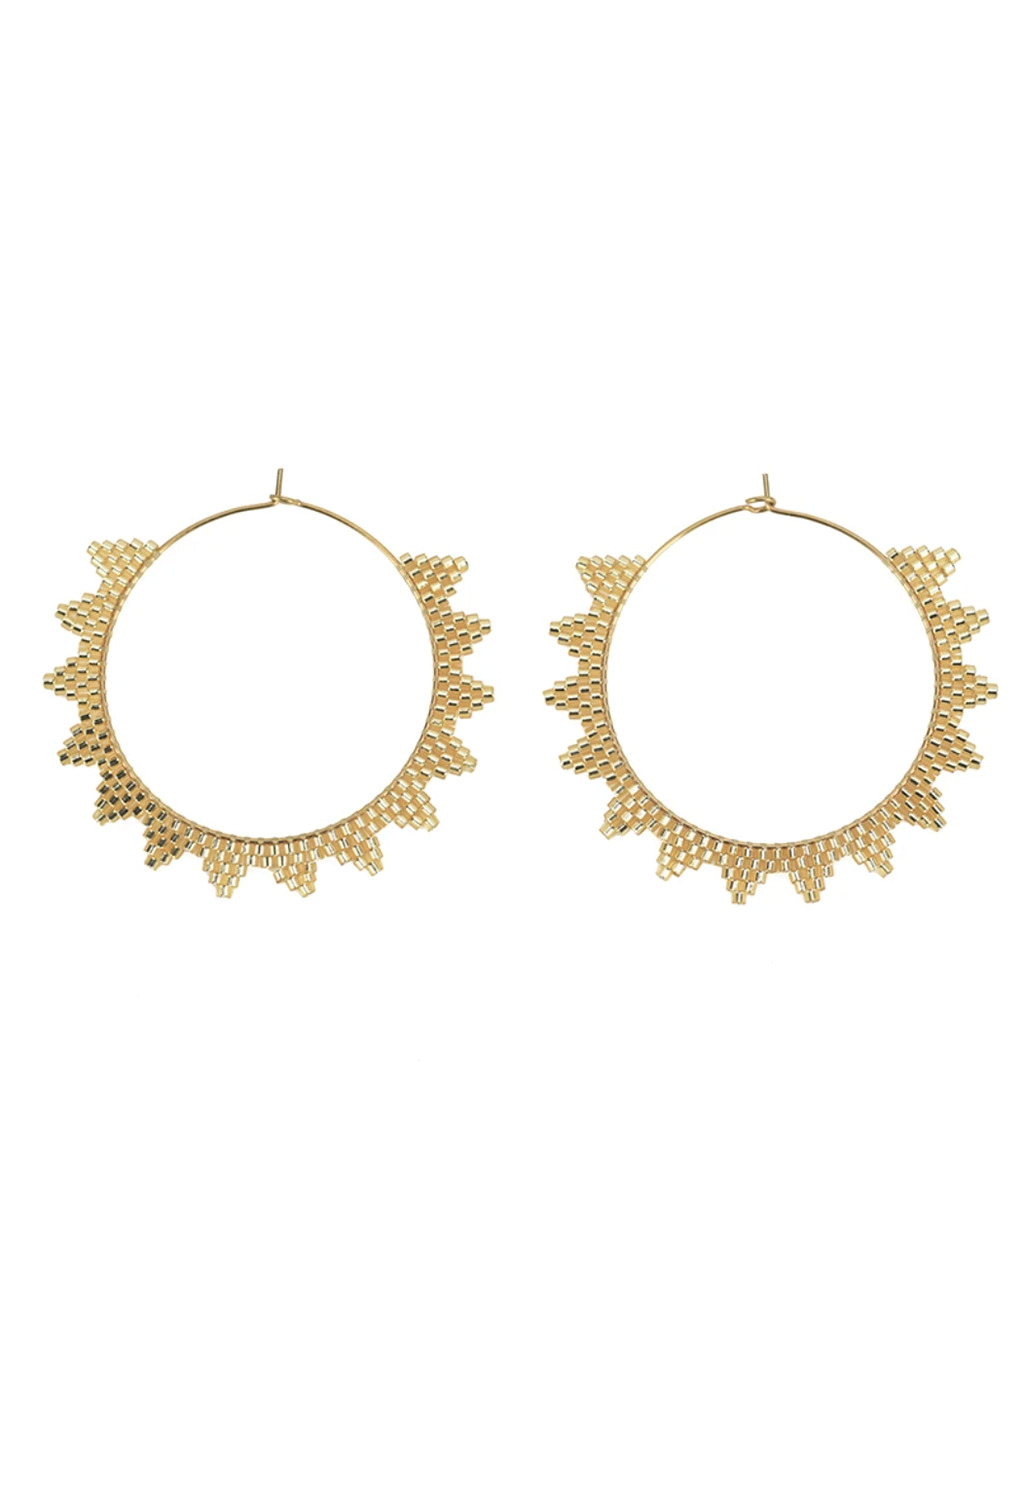 CL Lanai Beaded Hoops, Gold